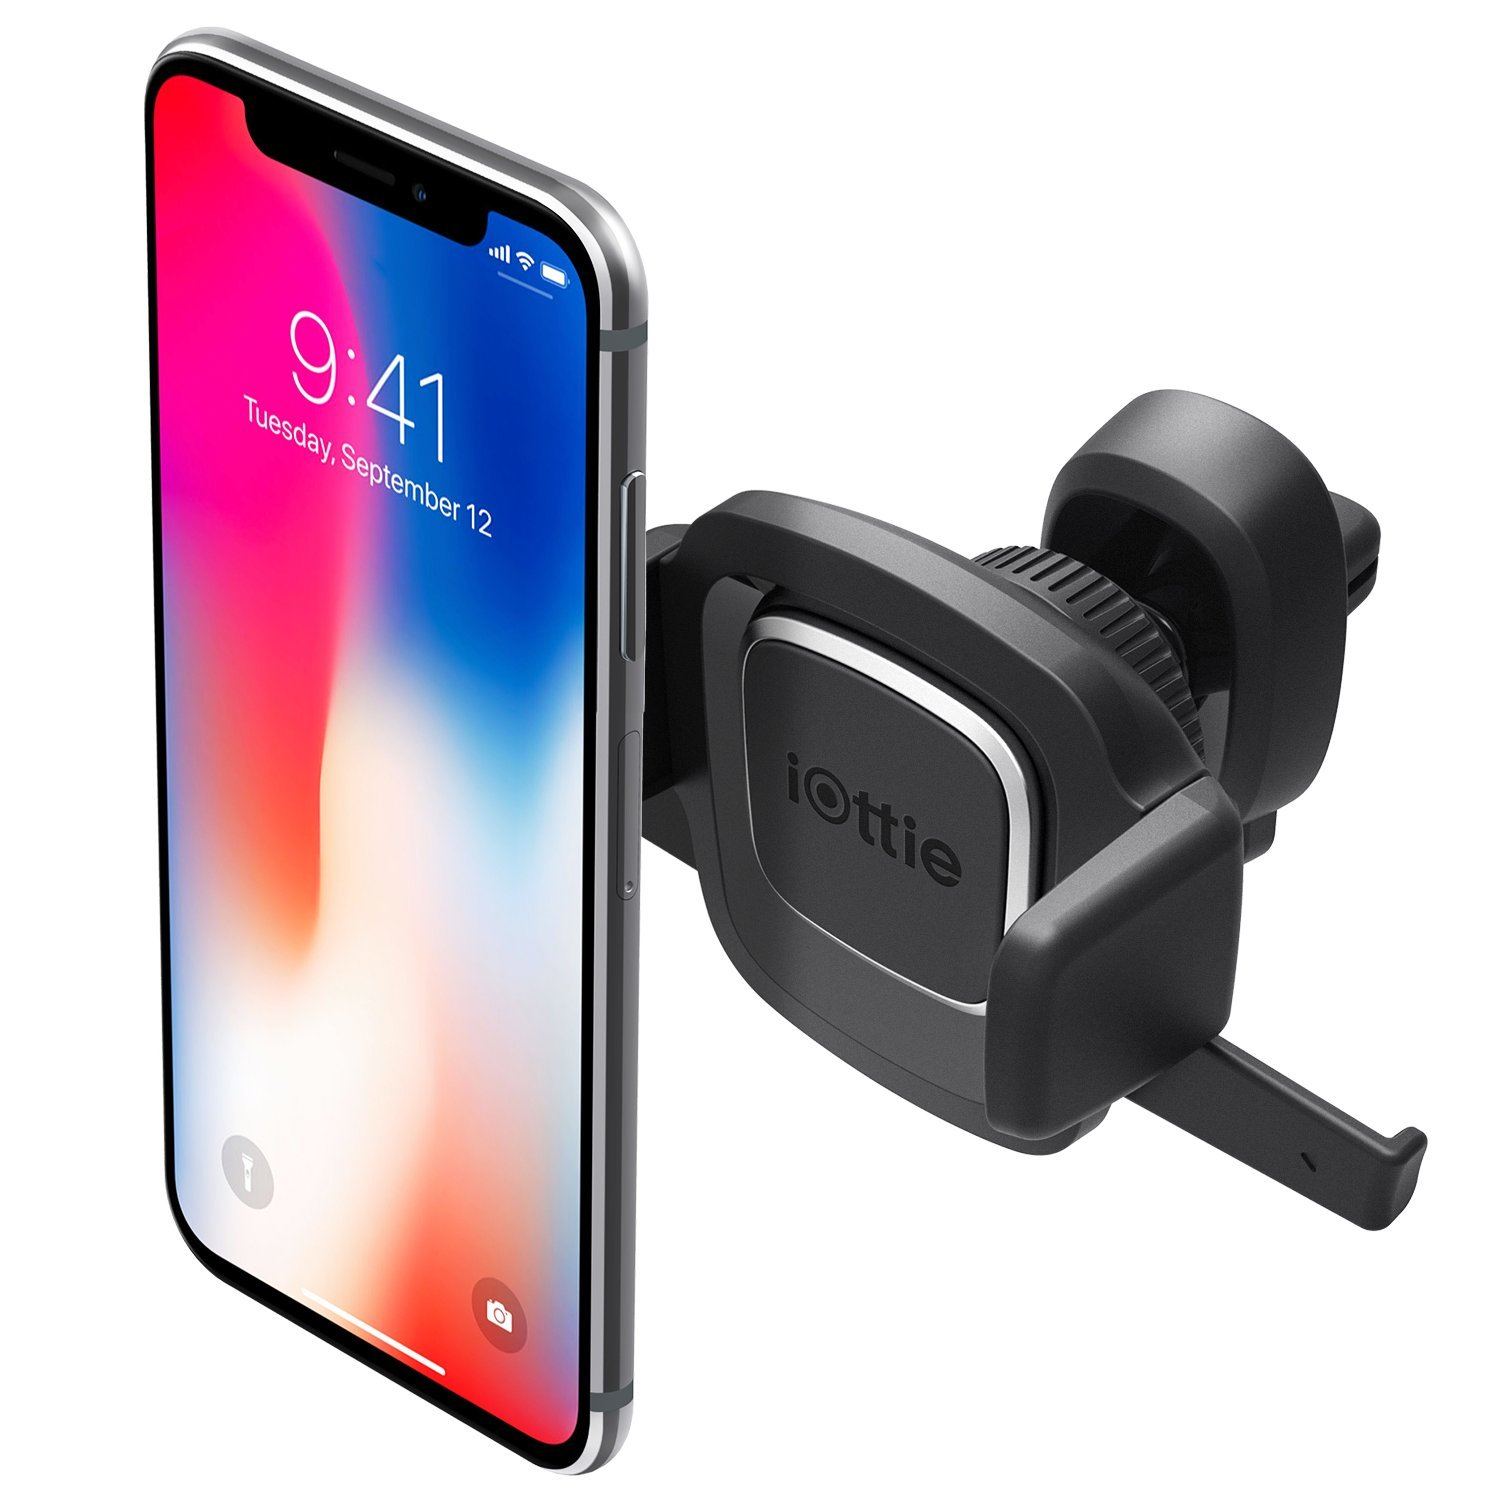 iOttie Easy One Touch 4 Air Vent Car Mount Phone Holder for iPhone X 8 Plus 7 Samsung Galaxy S9 S8 Edge S7 Note 9 & Other Smartphone [10 Dollar Amazon Credit]